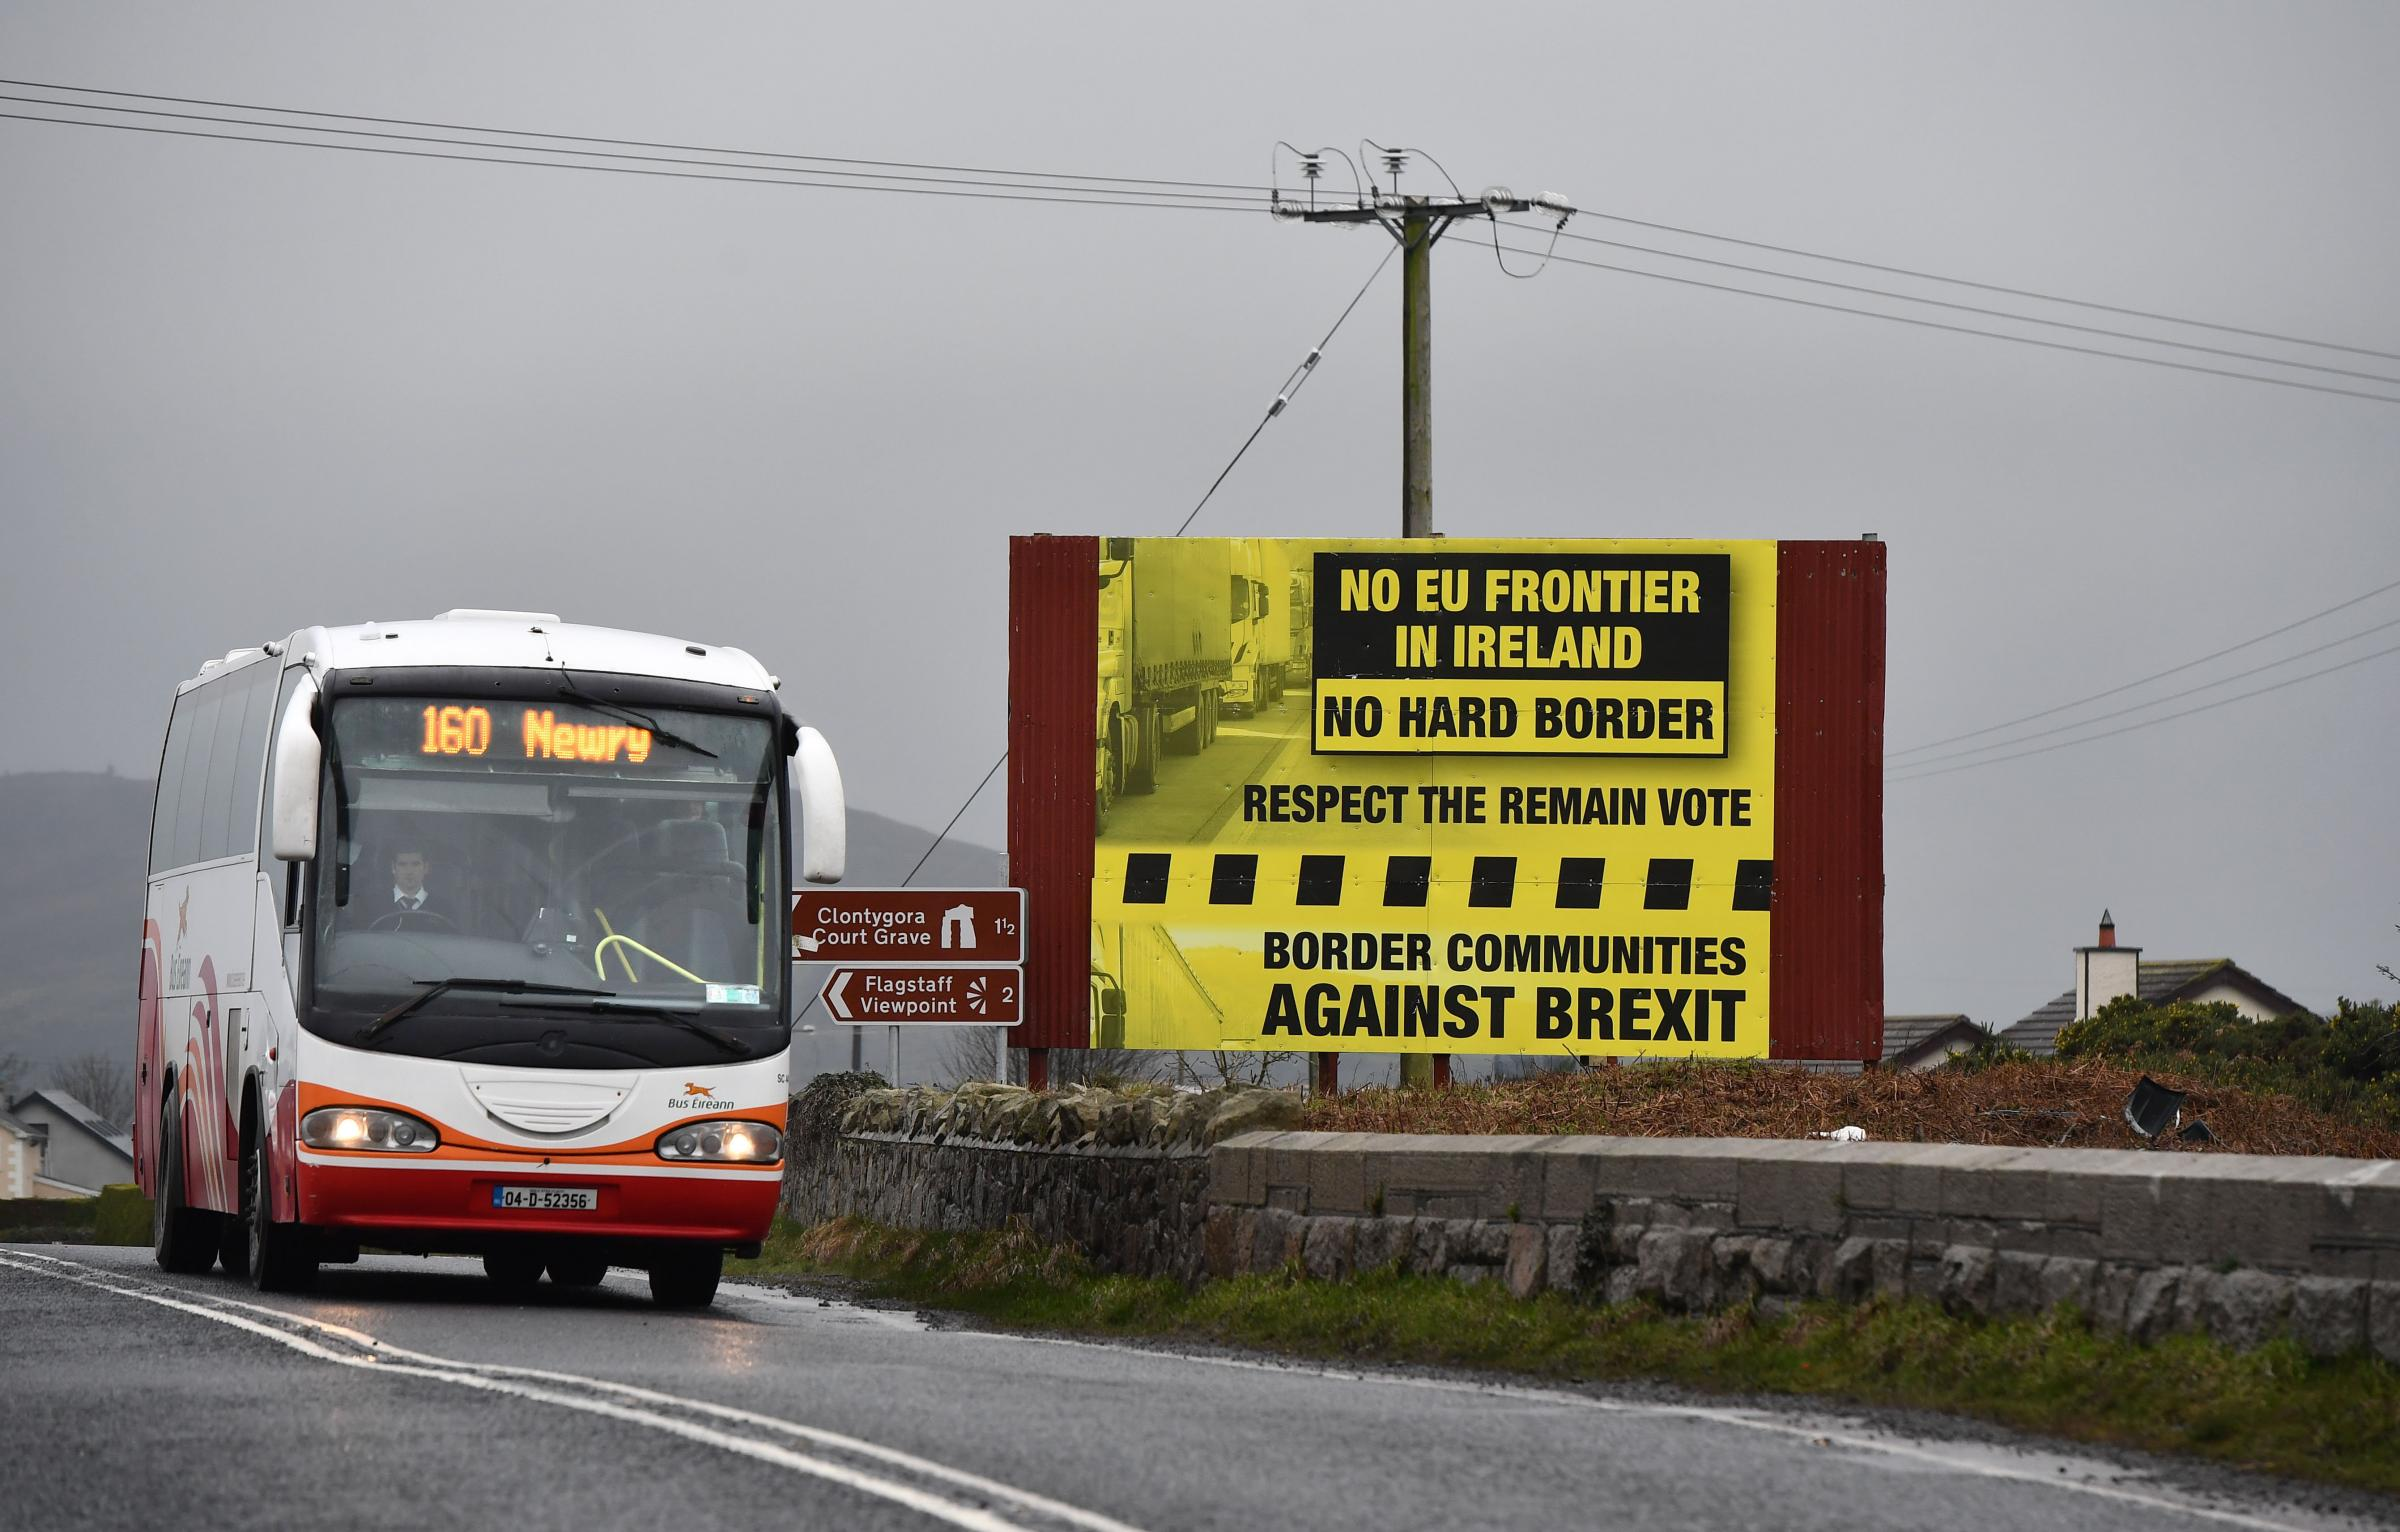 The lawyer called for a common rule book that can be interpreted the same on both sides of the Irish border. Photograph: Getty